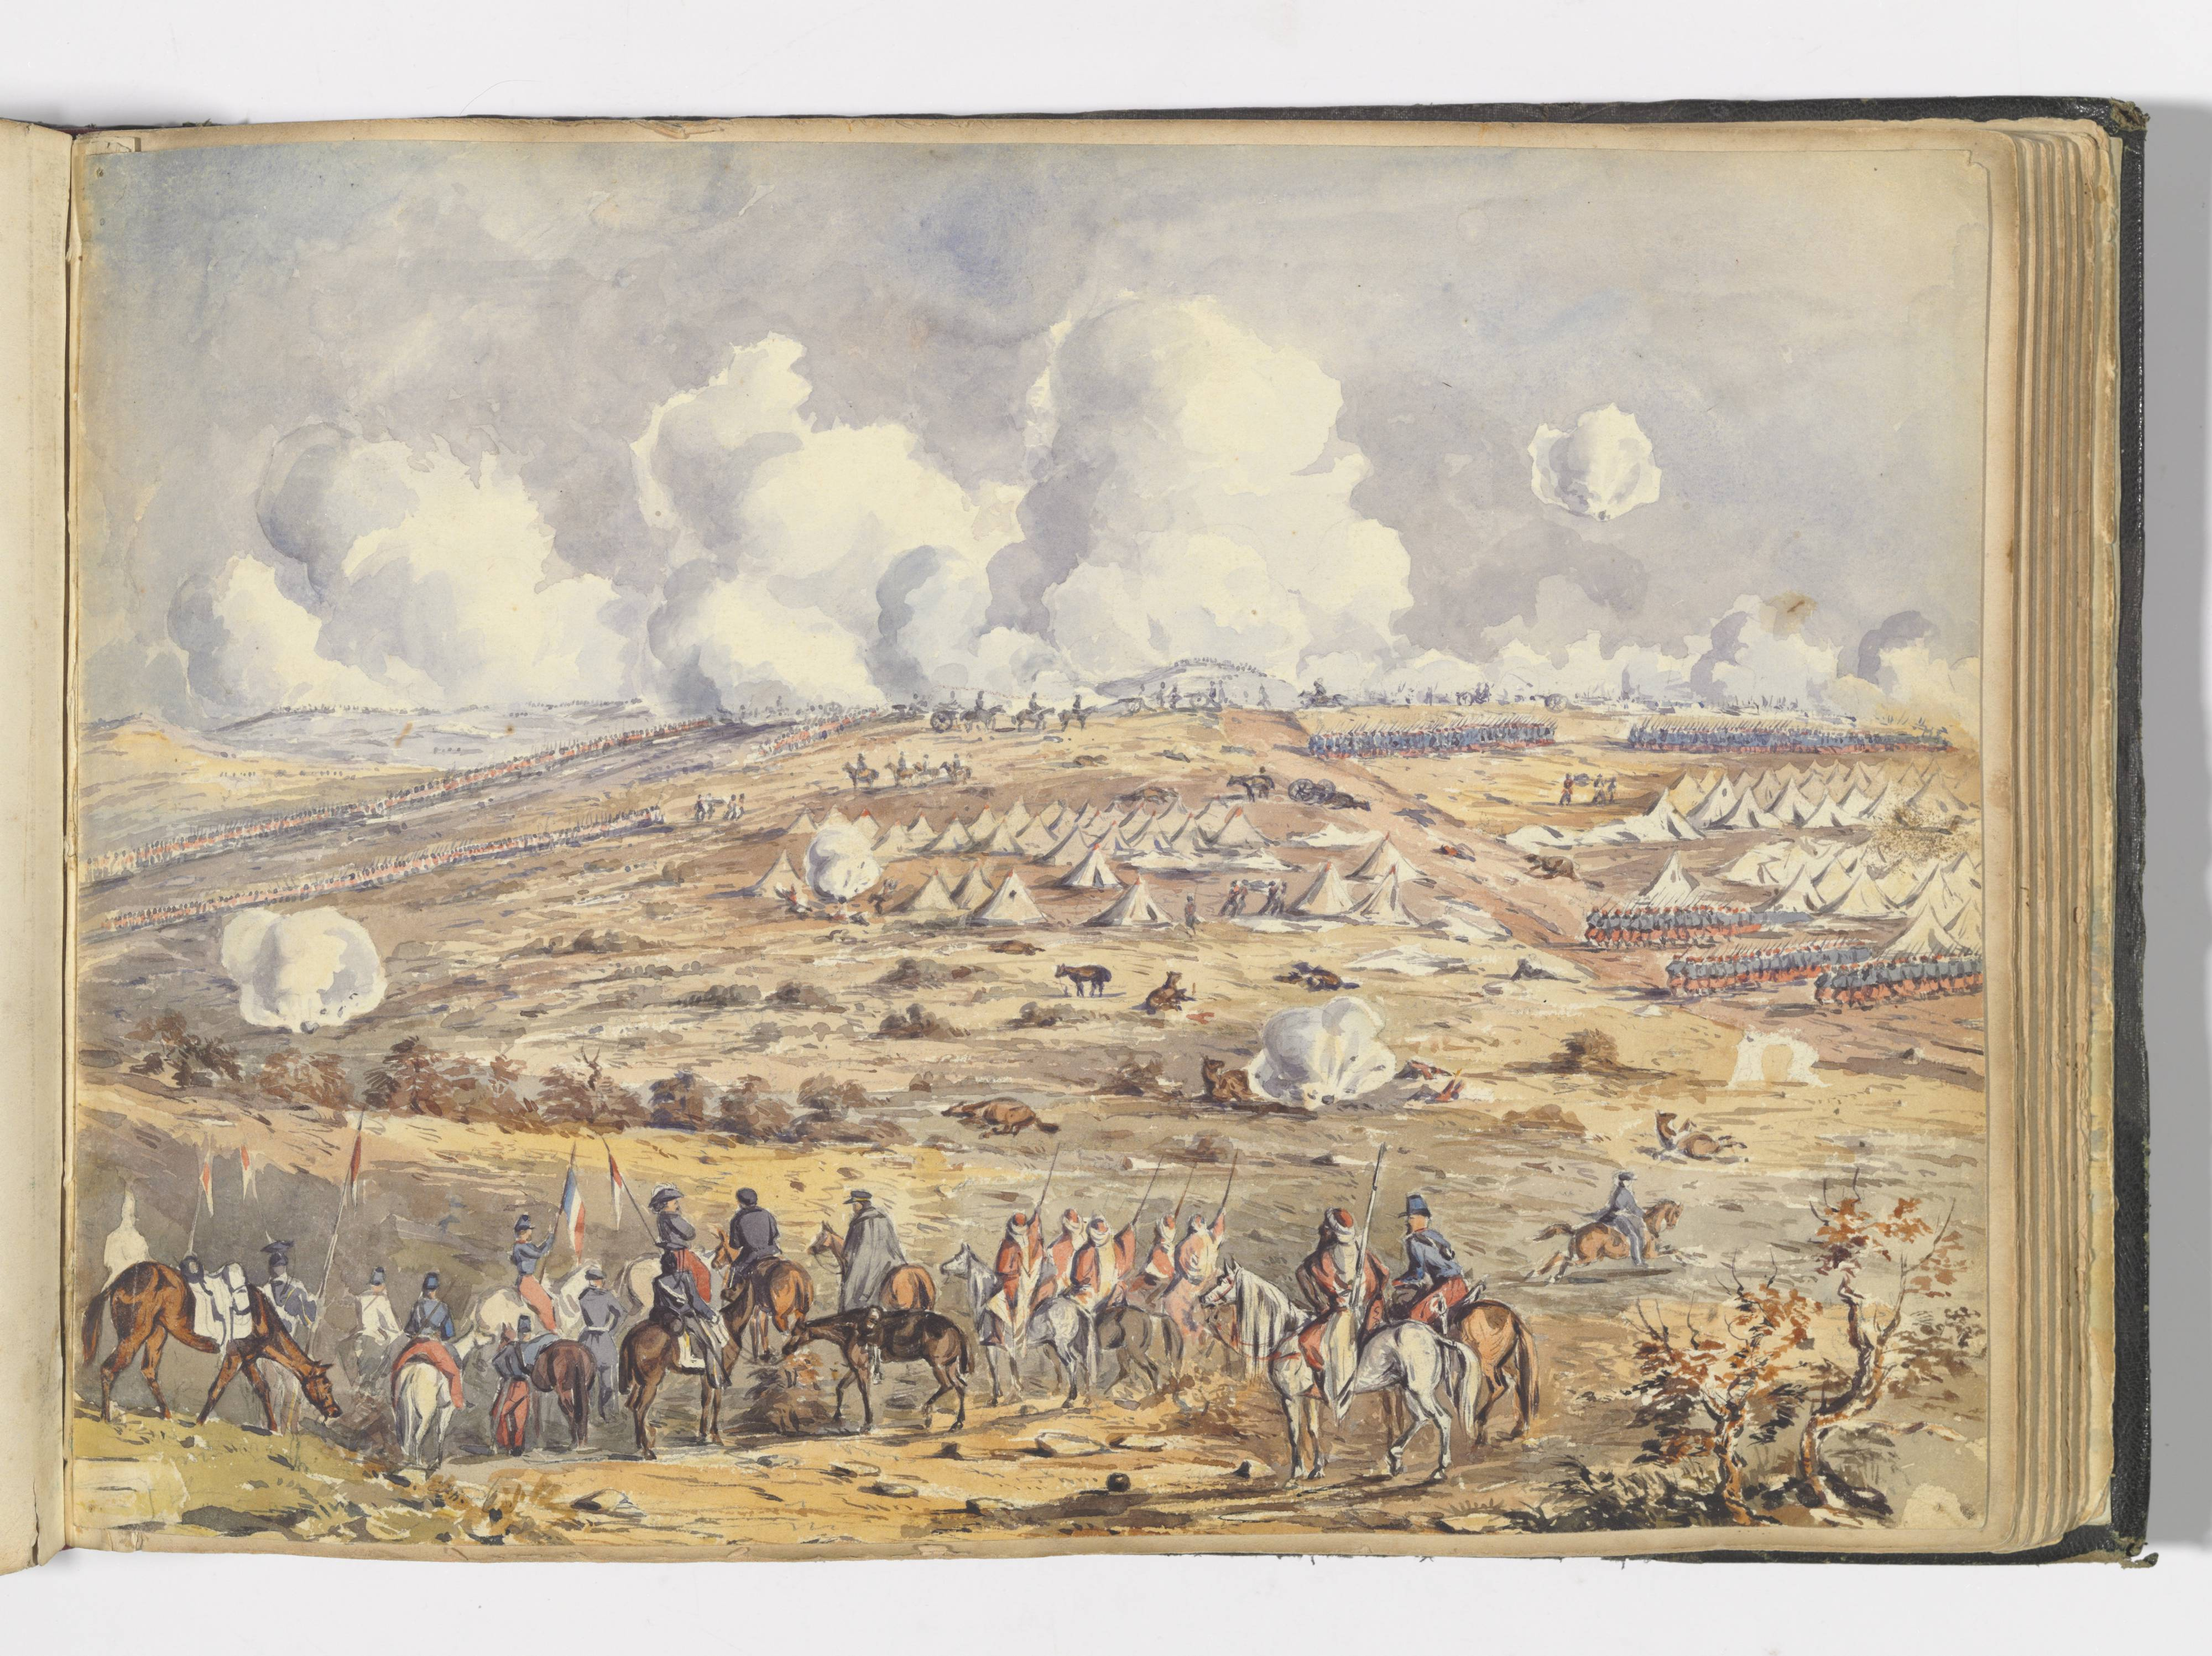 Watercolour painting. A view of the battlefield at Inkerman in the Crimea. Uniformed men on horseback look on in the foreground at a series of army encampment tents and skirmishes in the middle distance.